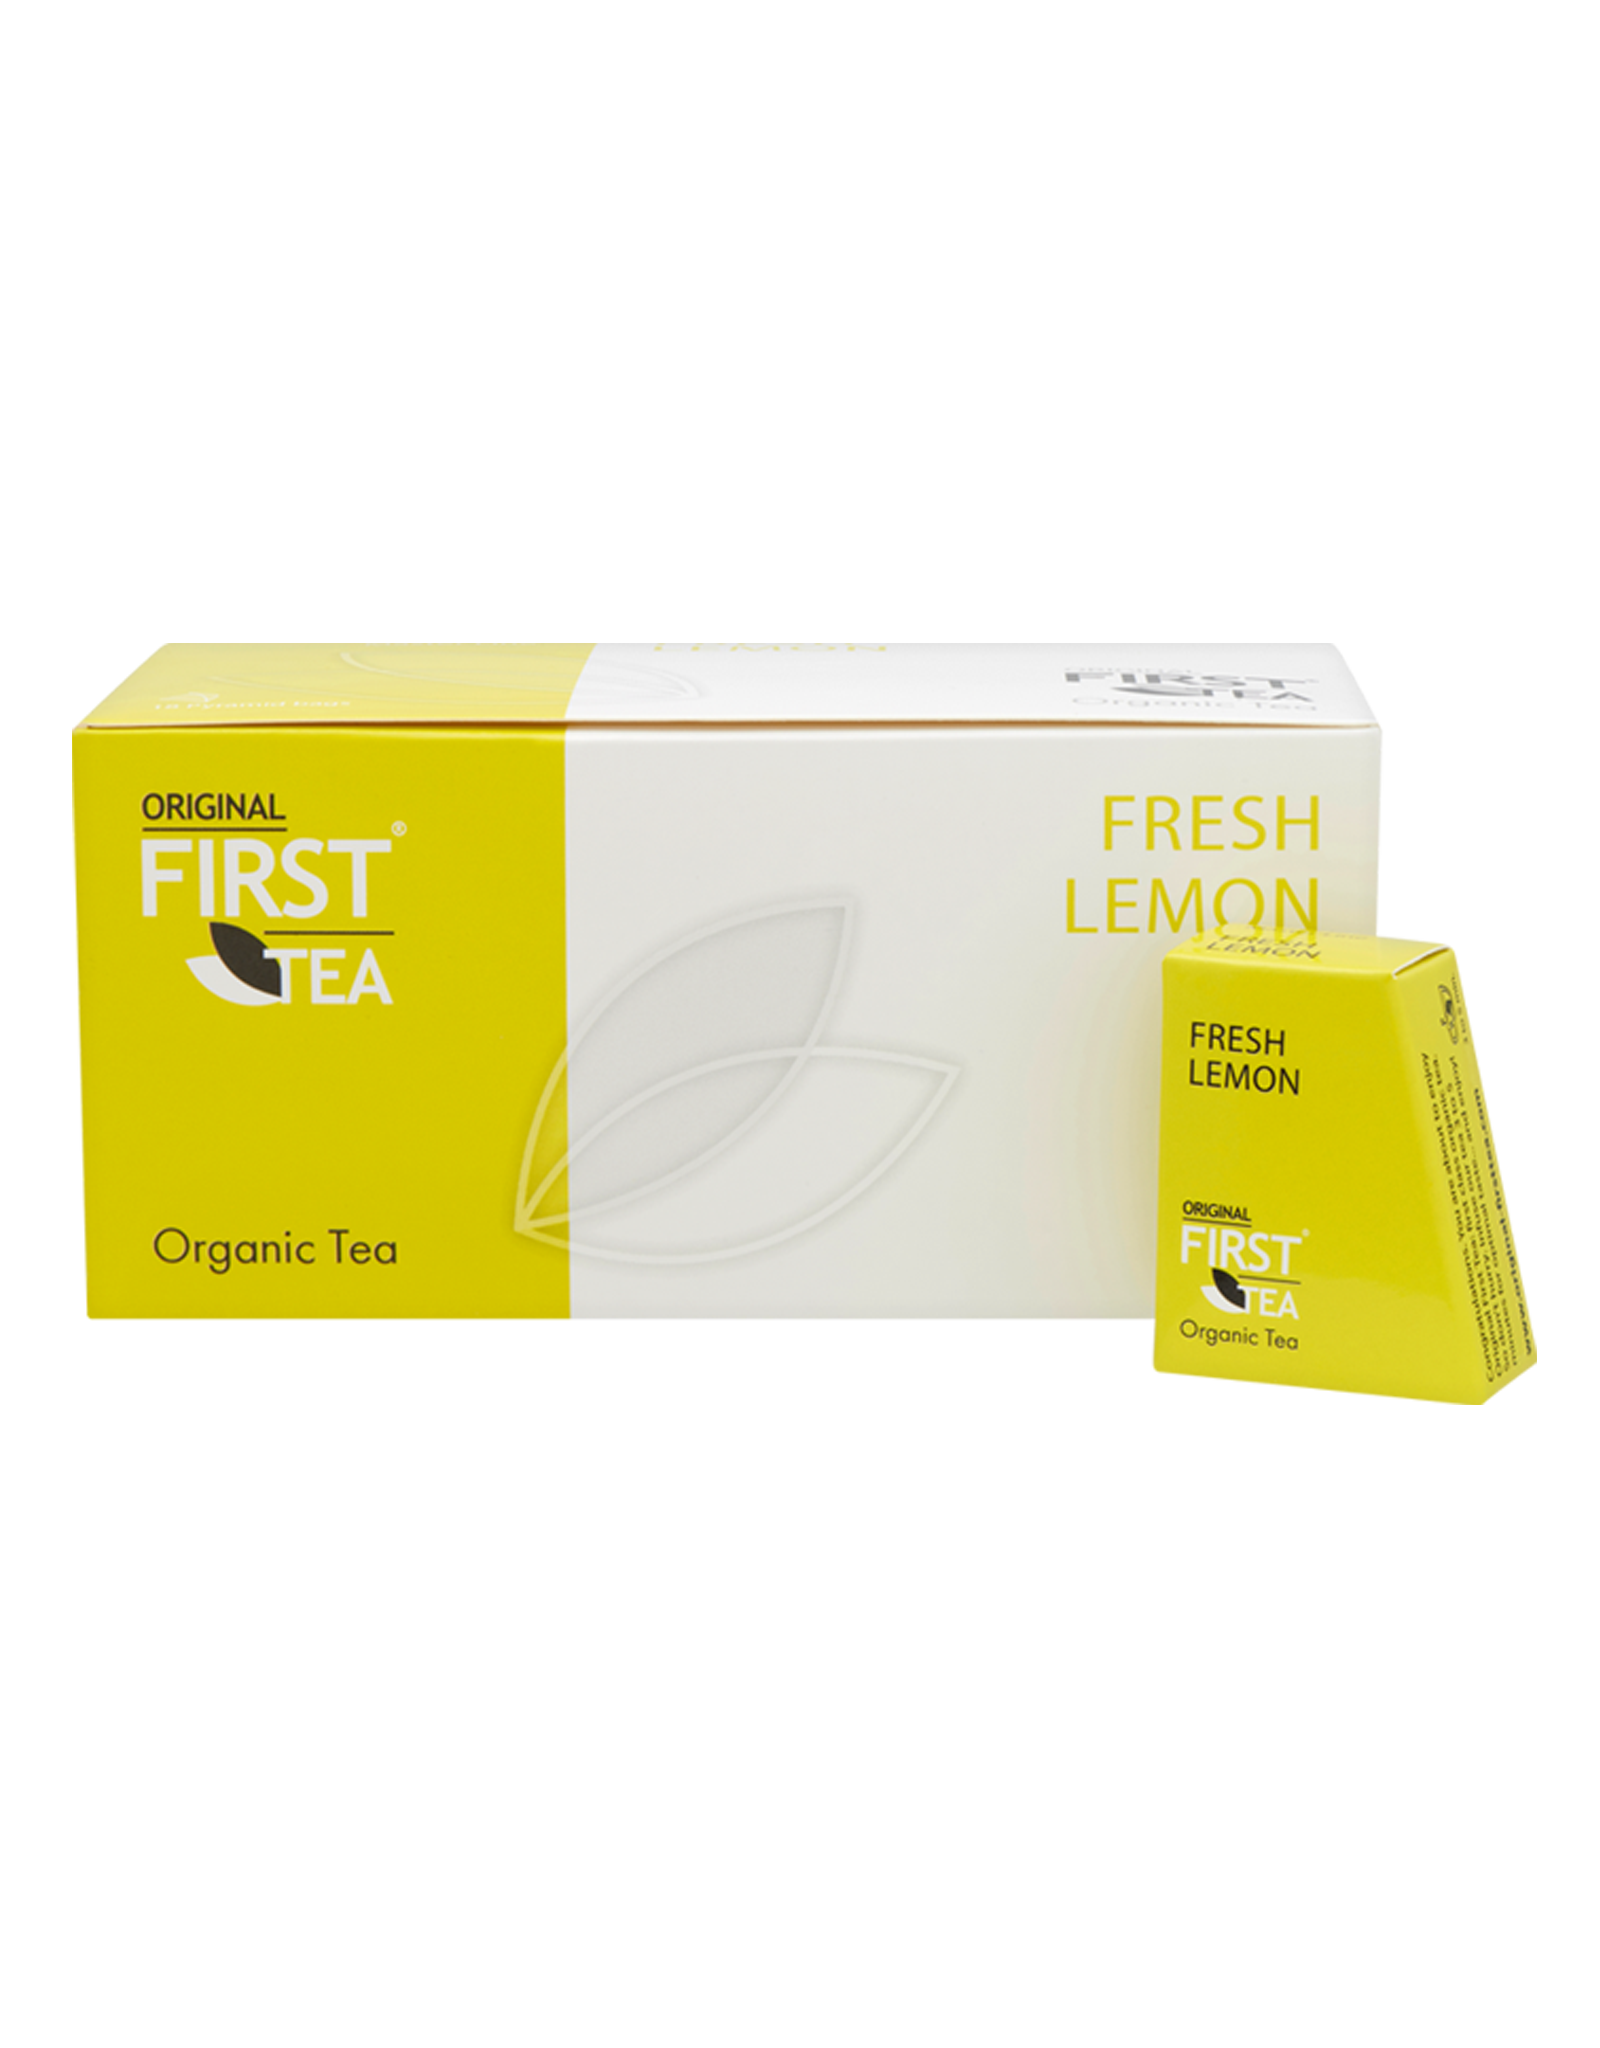 First Tea Master line Masterline Fresh Lemon